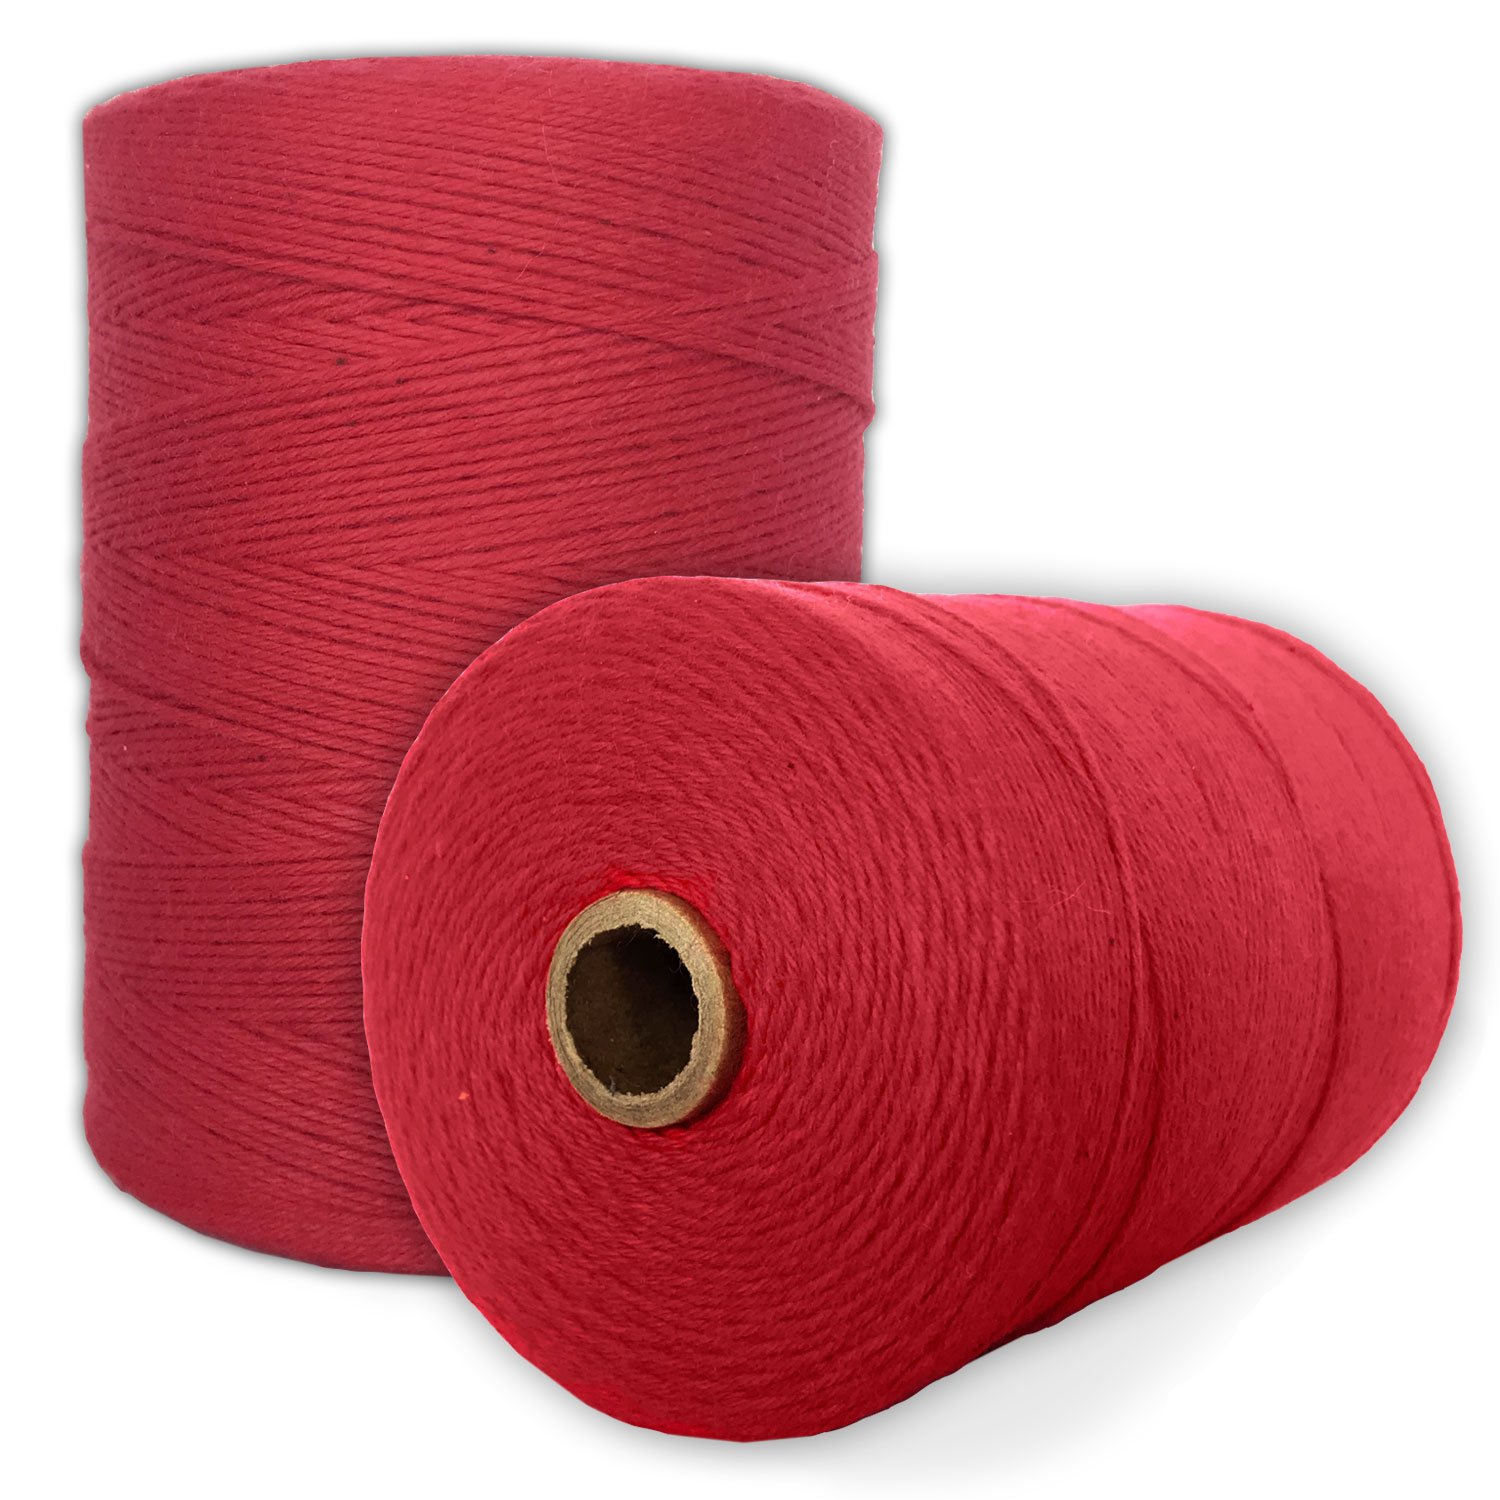 Durable Loom Warp Thread Natural//Off WHITE 8//4 Yarn 800 Yards Perfect For Weavin